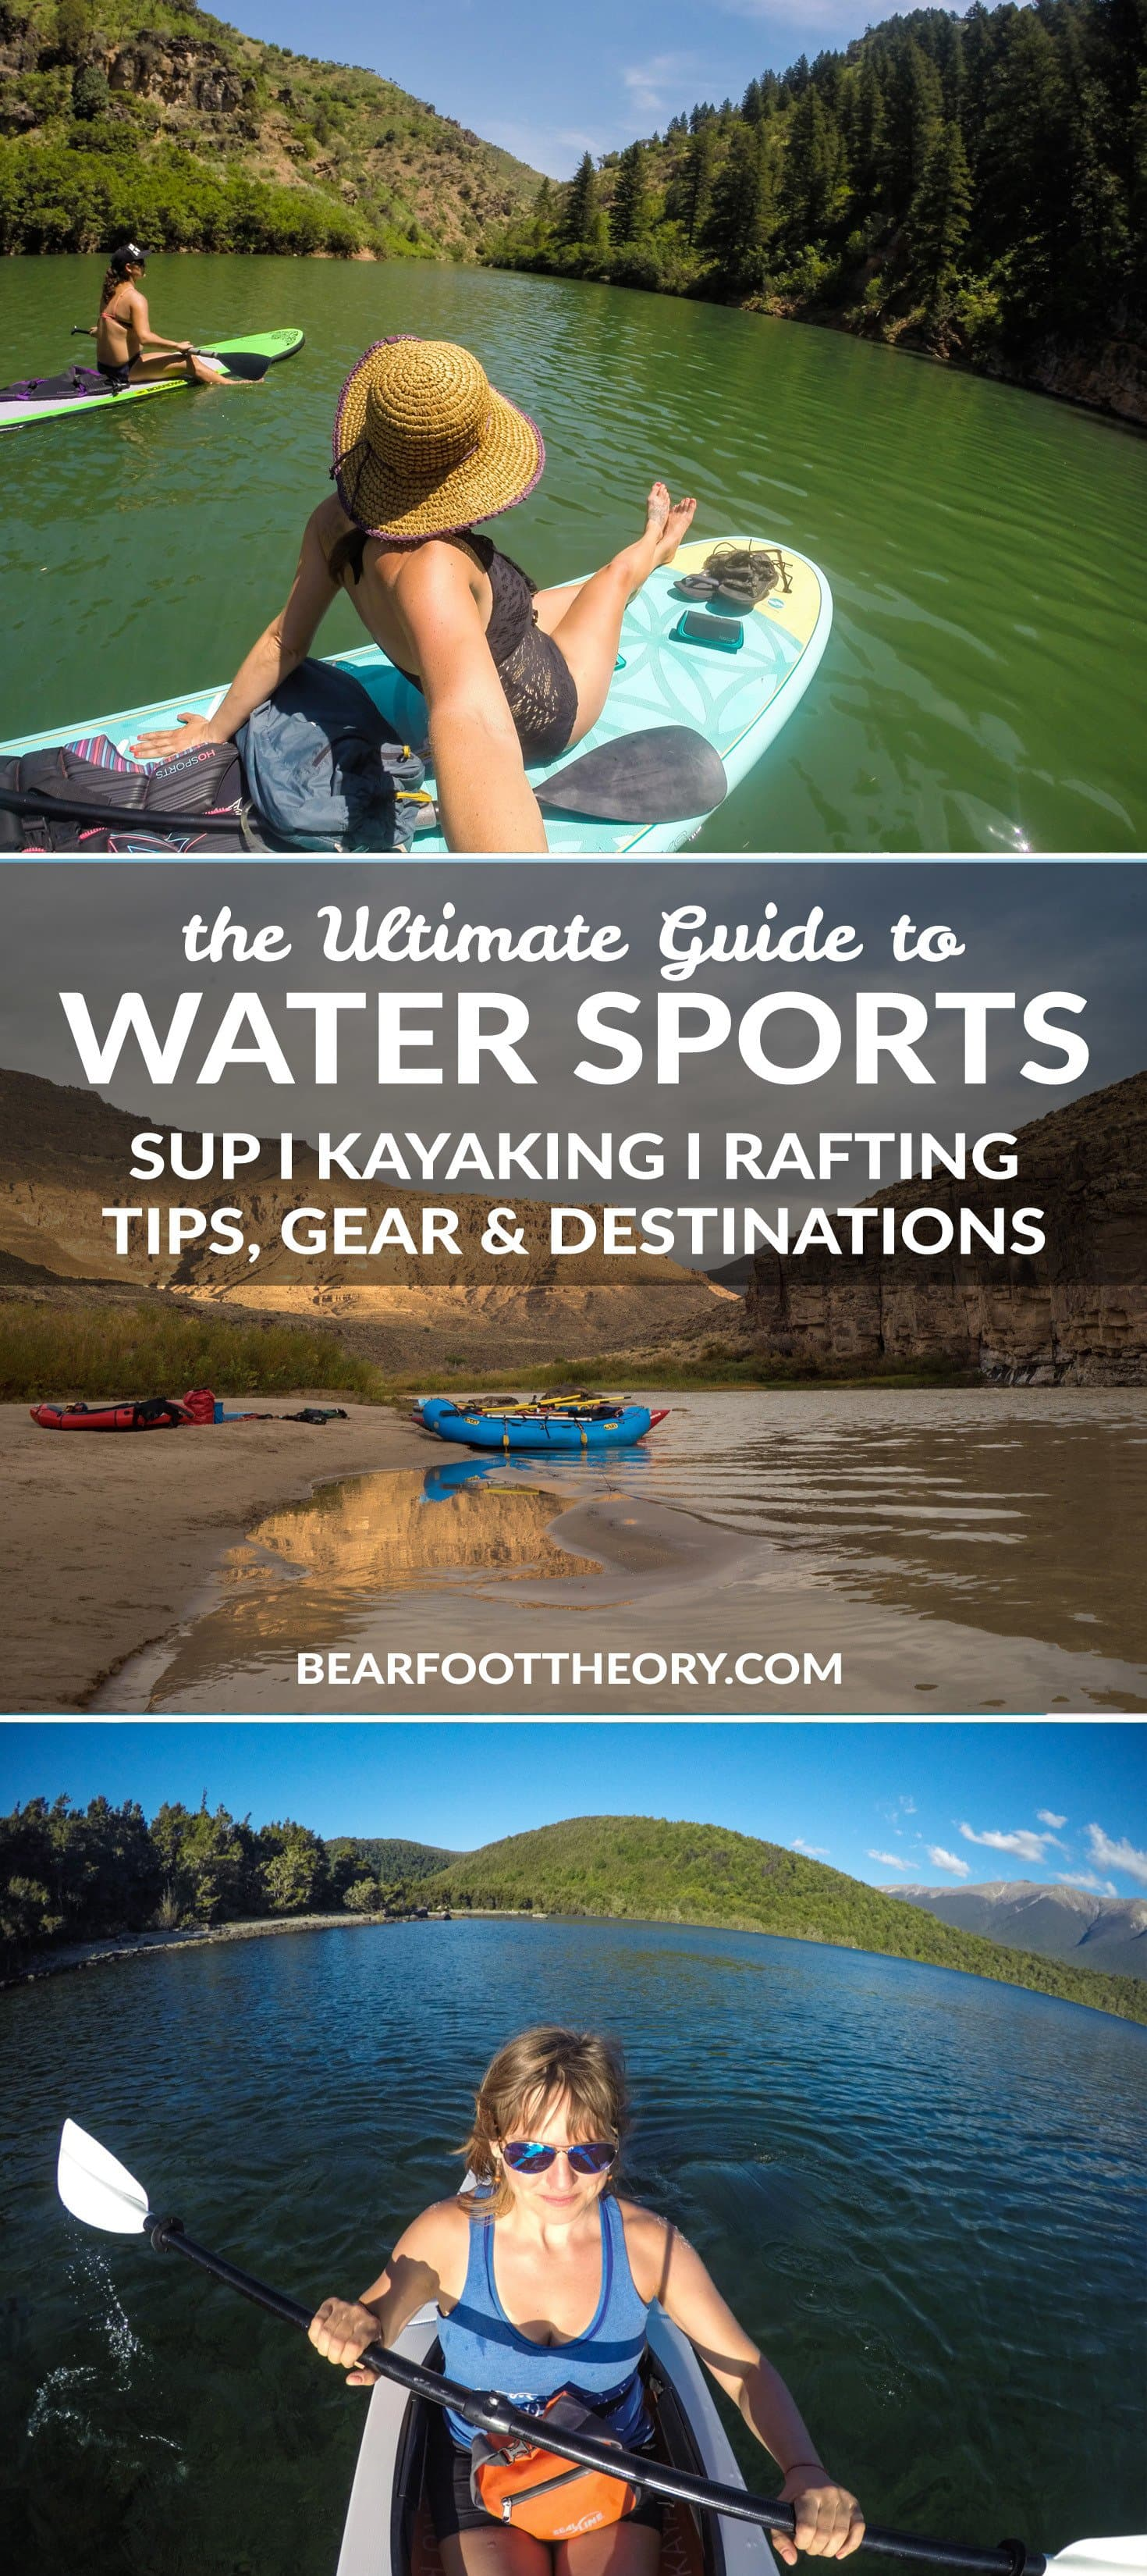 Our ultimate guide to water sports featuring the best SUPing, rafting and kayaking spots, along with helpful tips and advice to keep you afloat!